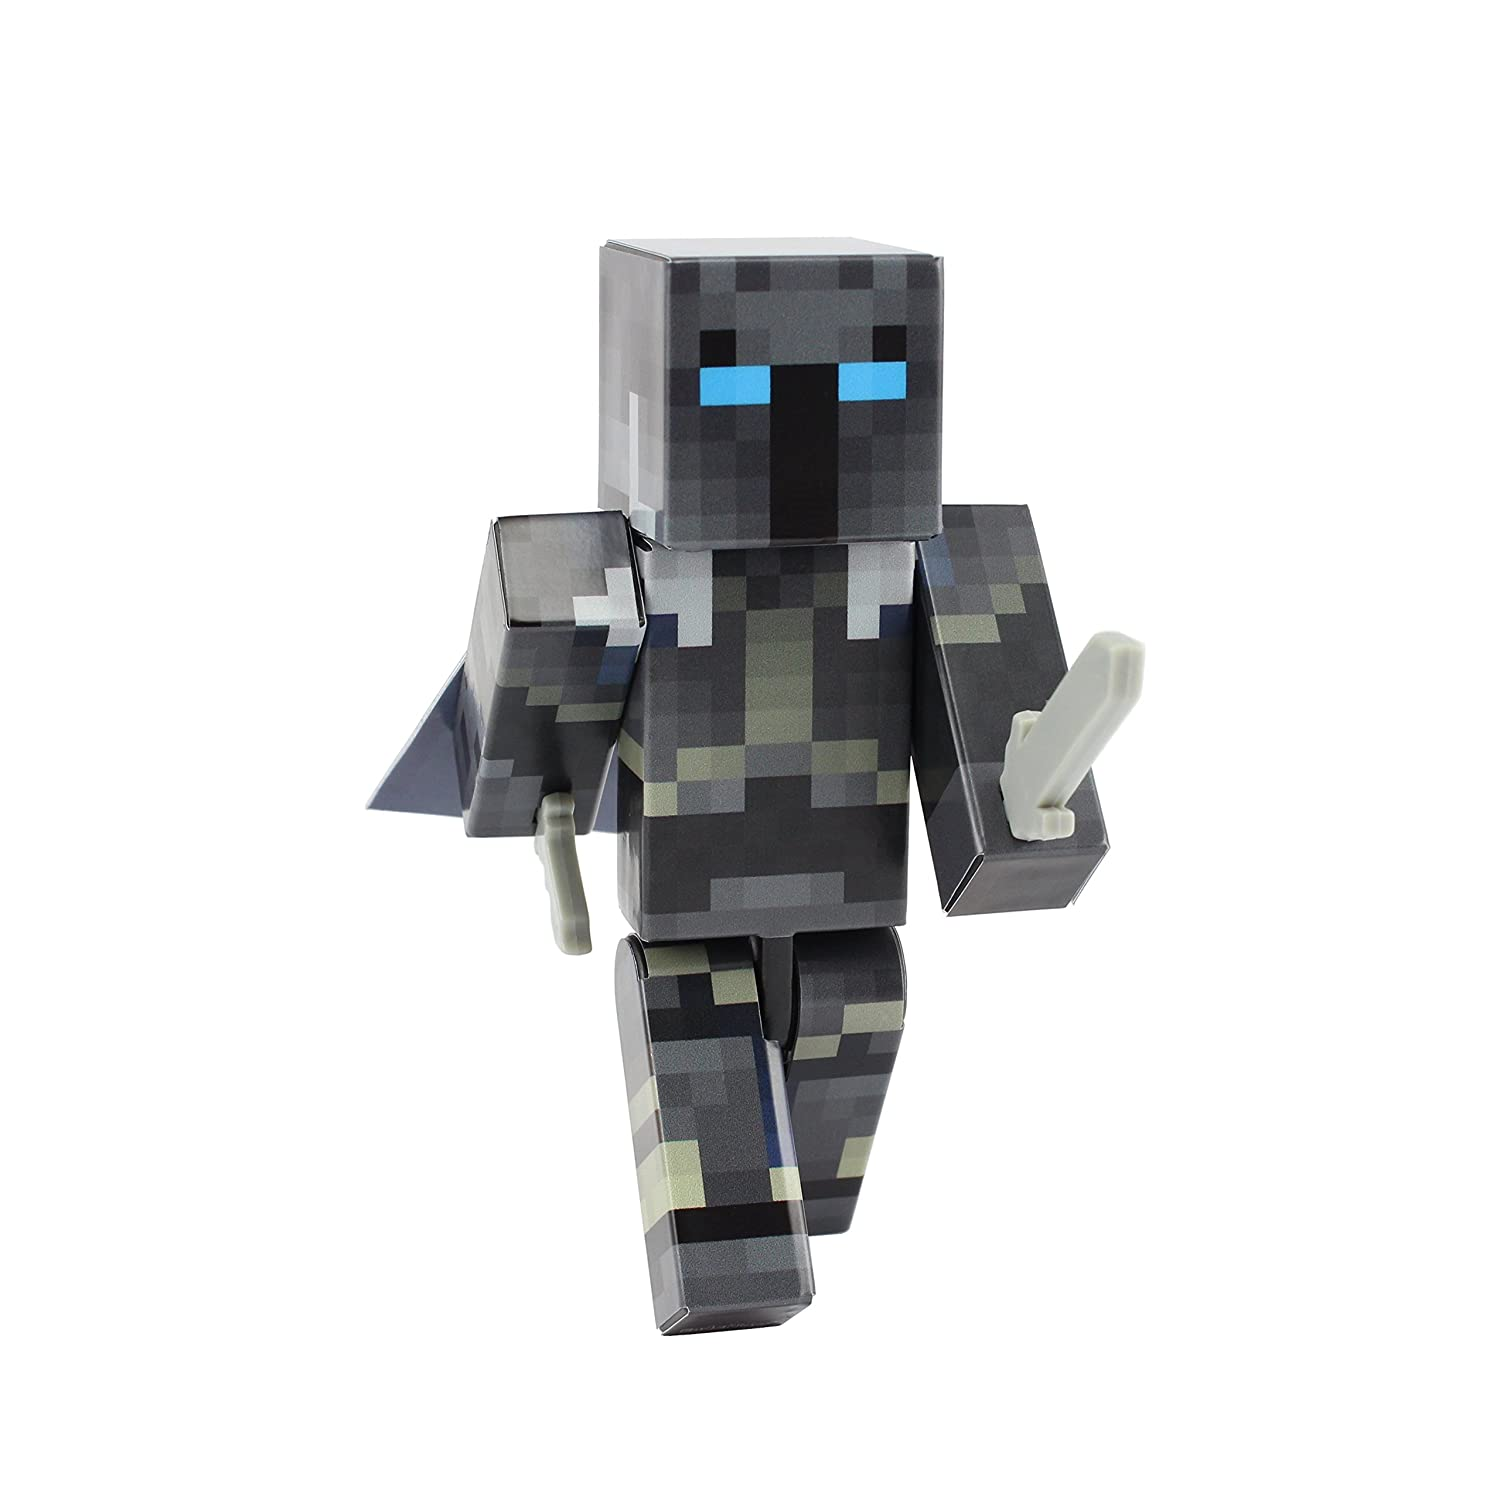 EnderToys Iron Armor Crusader Action Figure Toy, 4 Inch Custom Series  Figurines, [Not an Official Minecraft Product]